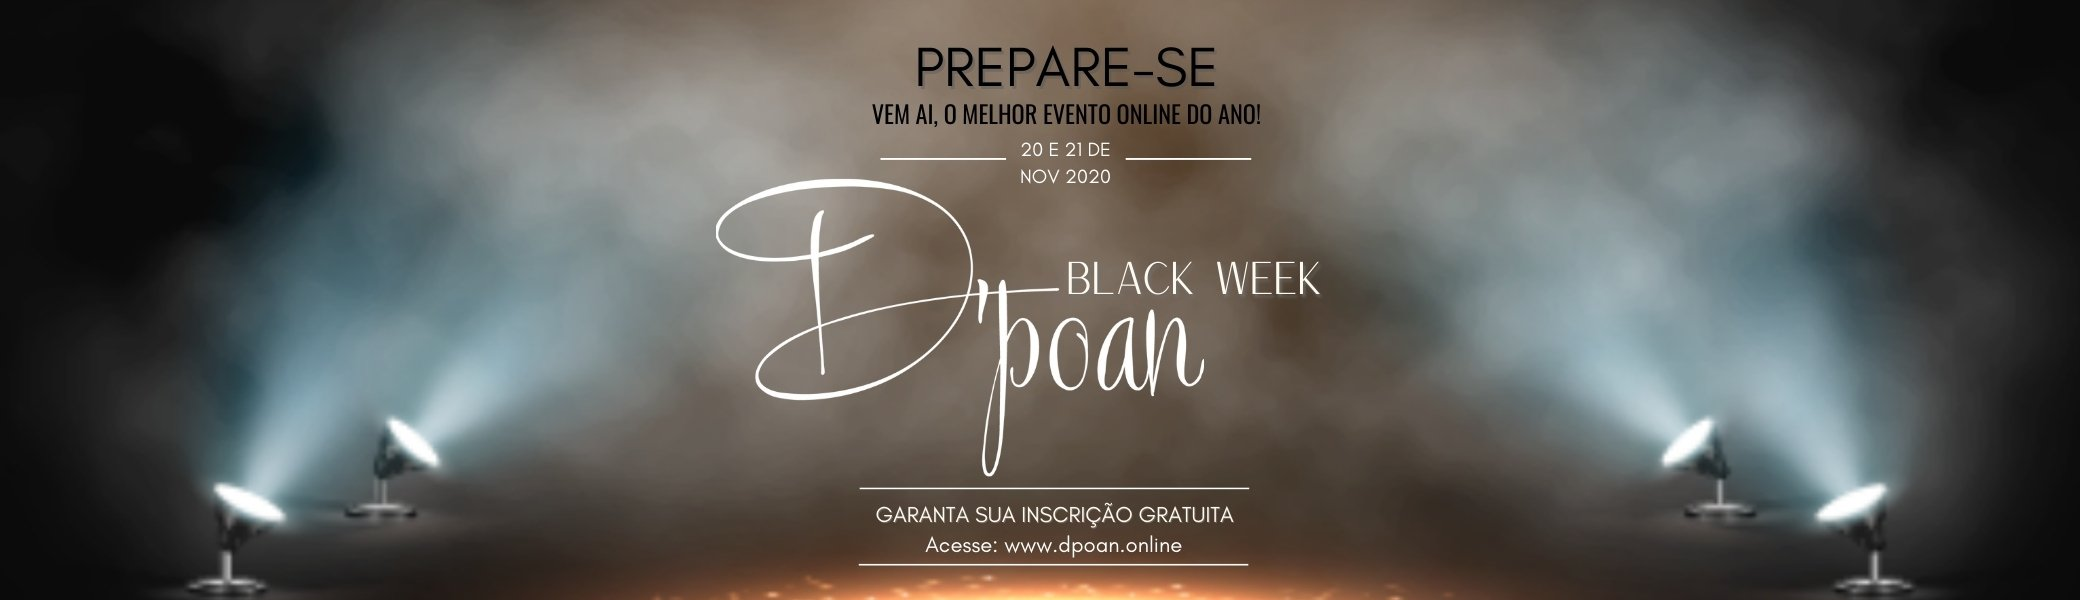 Black Week D'poan 2020